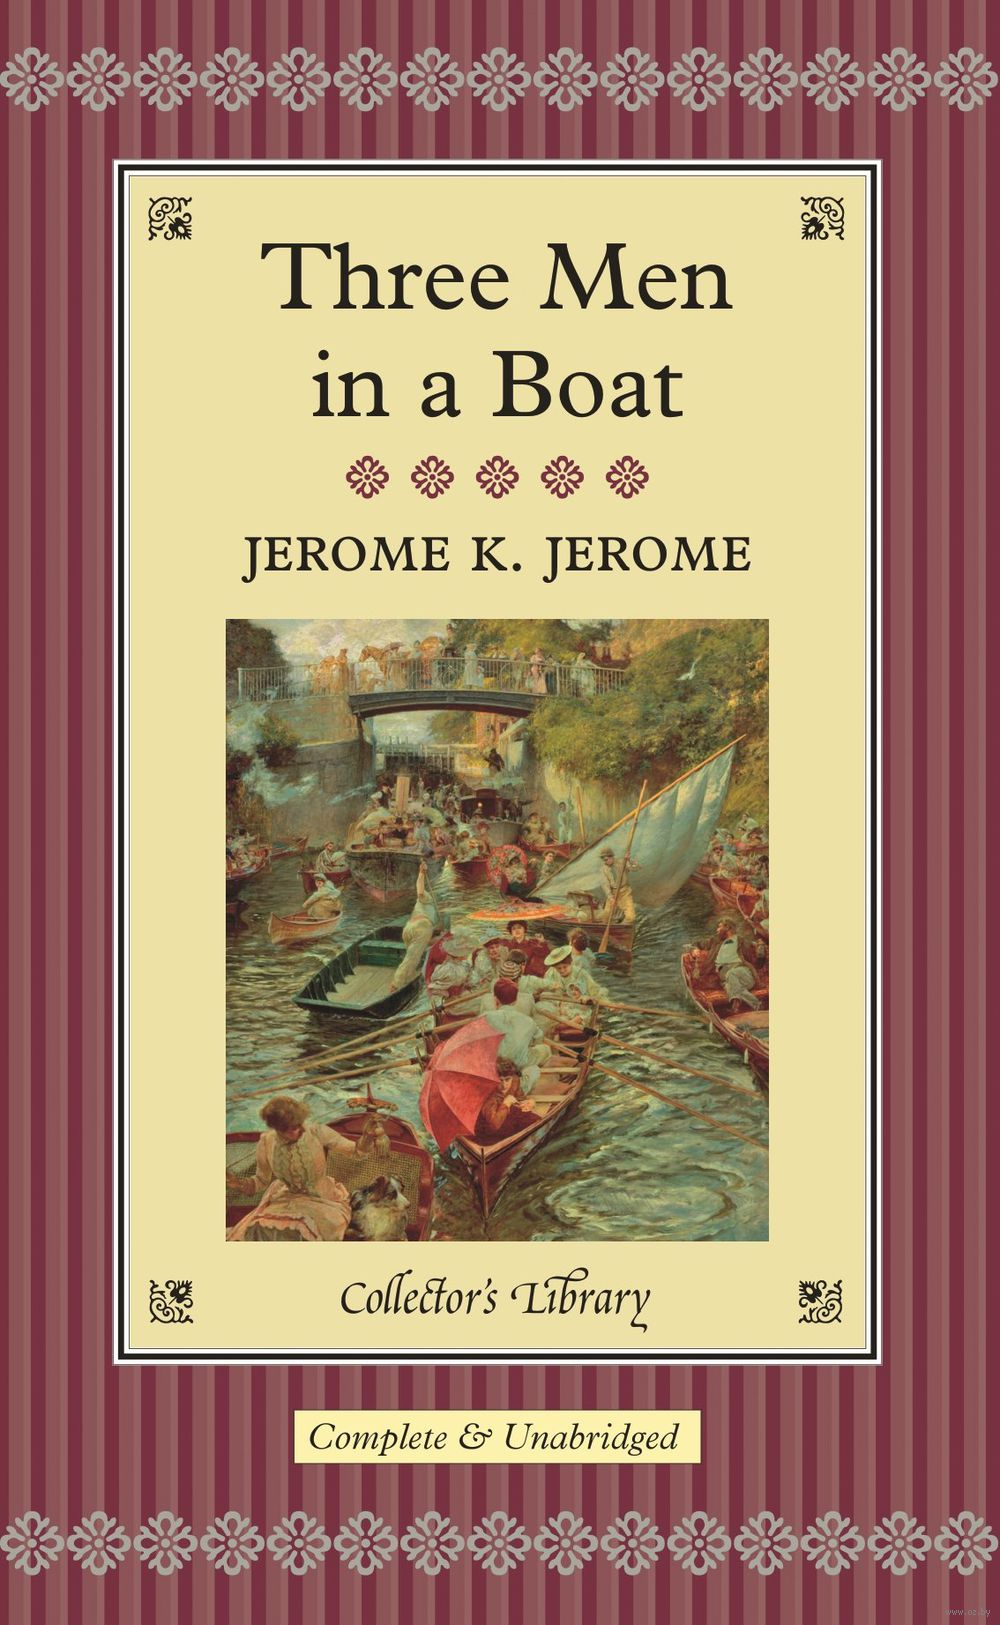 three men in a boat Three men in a boat (to say nothing of the dog), published in 1889, is a humorous account by english writer jerome k jerome of a two-week boating holiday on the thames from kingston upon thames to oxford and back to kingston.